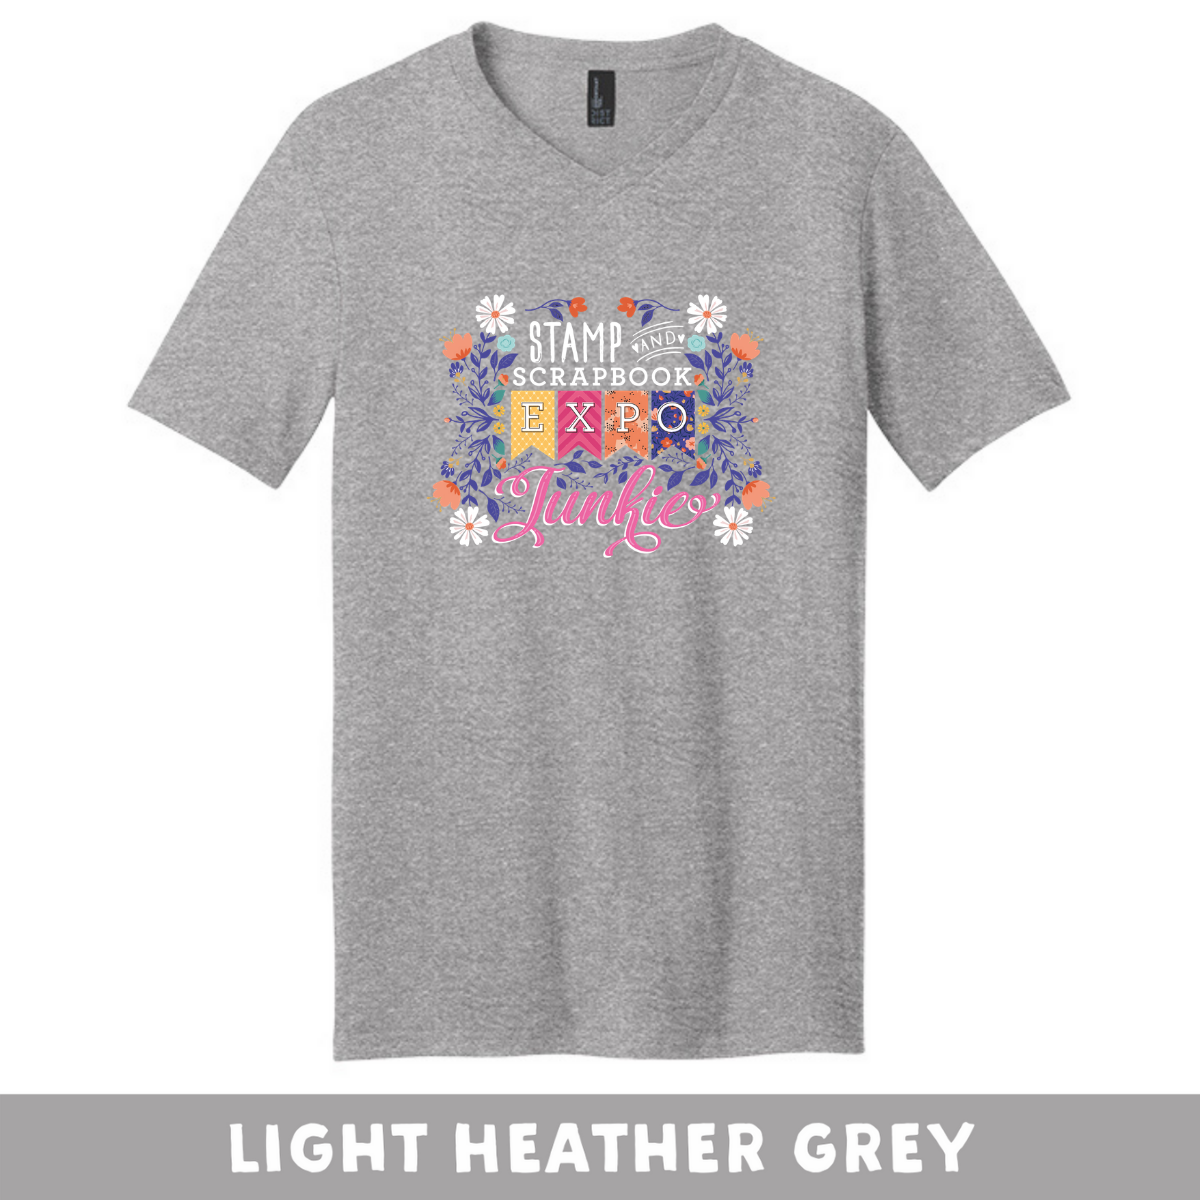 Light Heather Grey - Extra Soft Unisex V-Neck - SSBE Junkie With/Flower